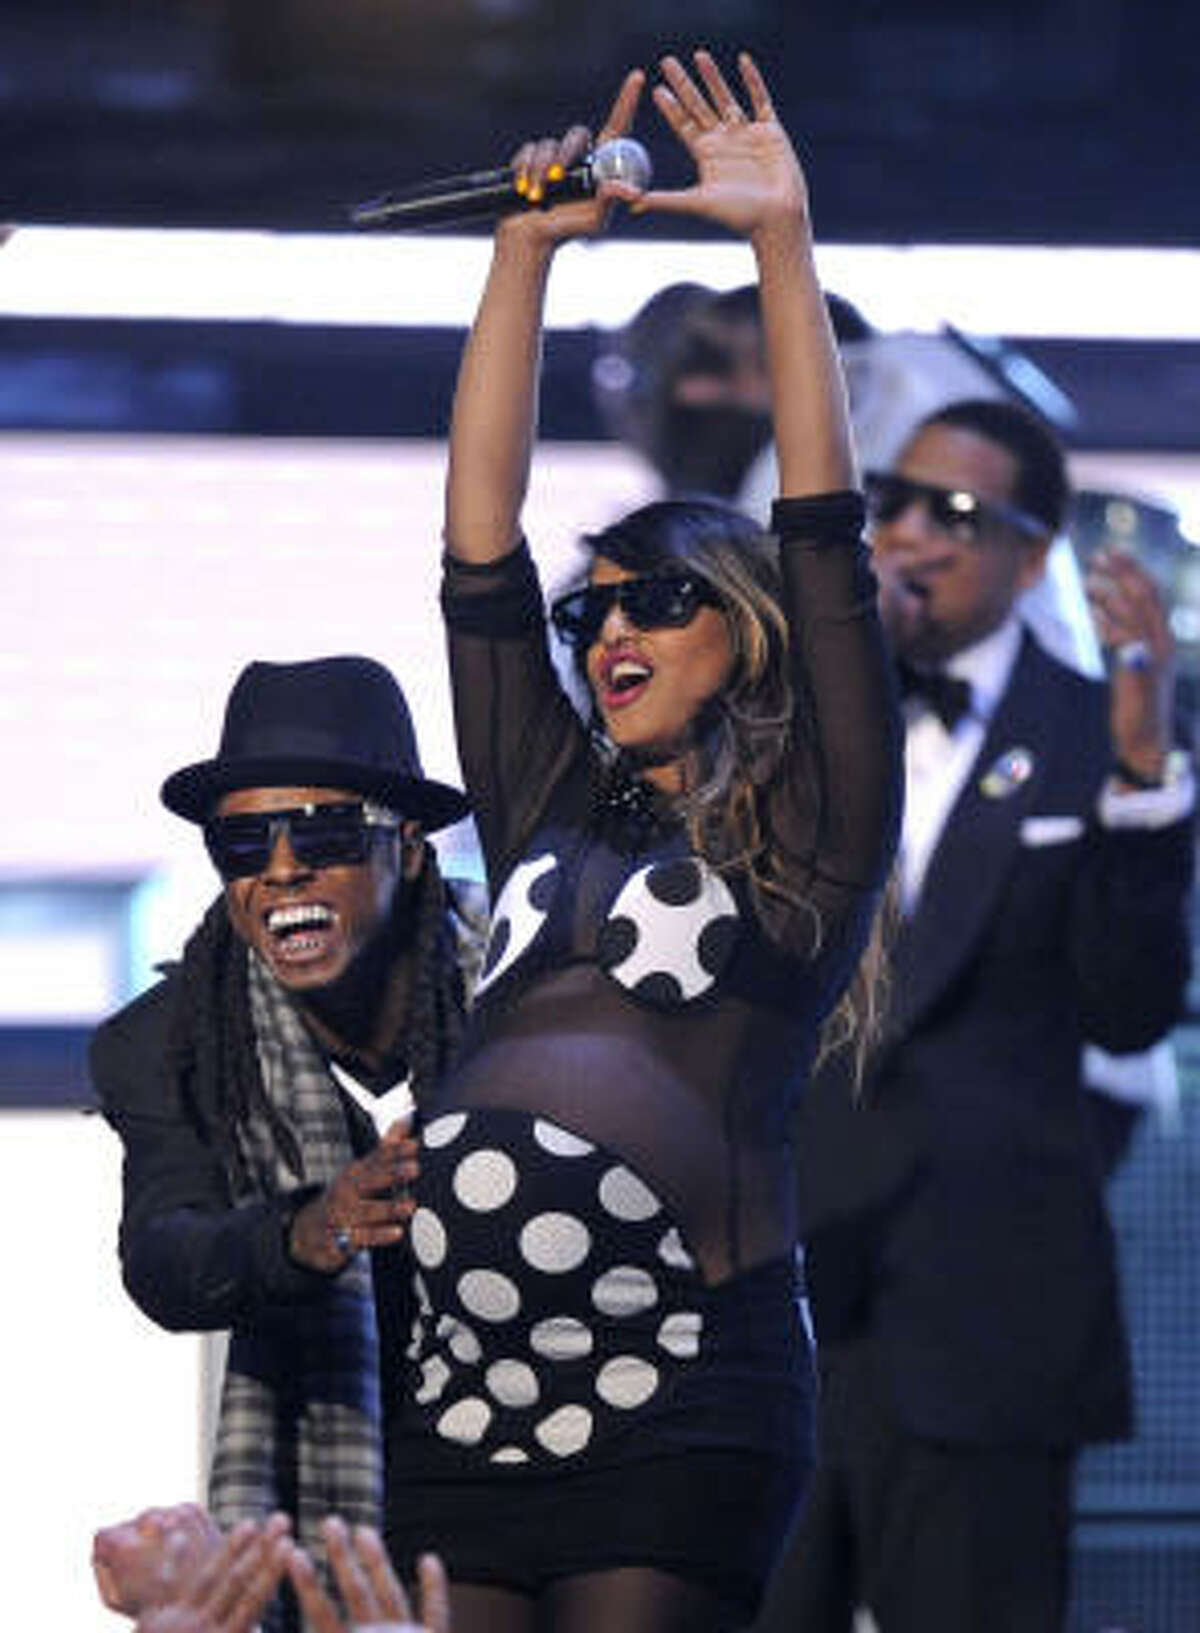 Lil Wayne, left, M.I.A., center, and Jay Z, in background, perform at the 51st Annual Grammy Awards.